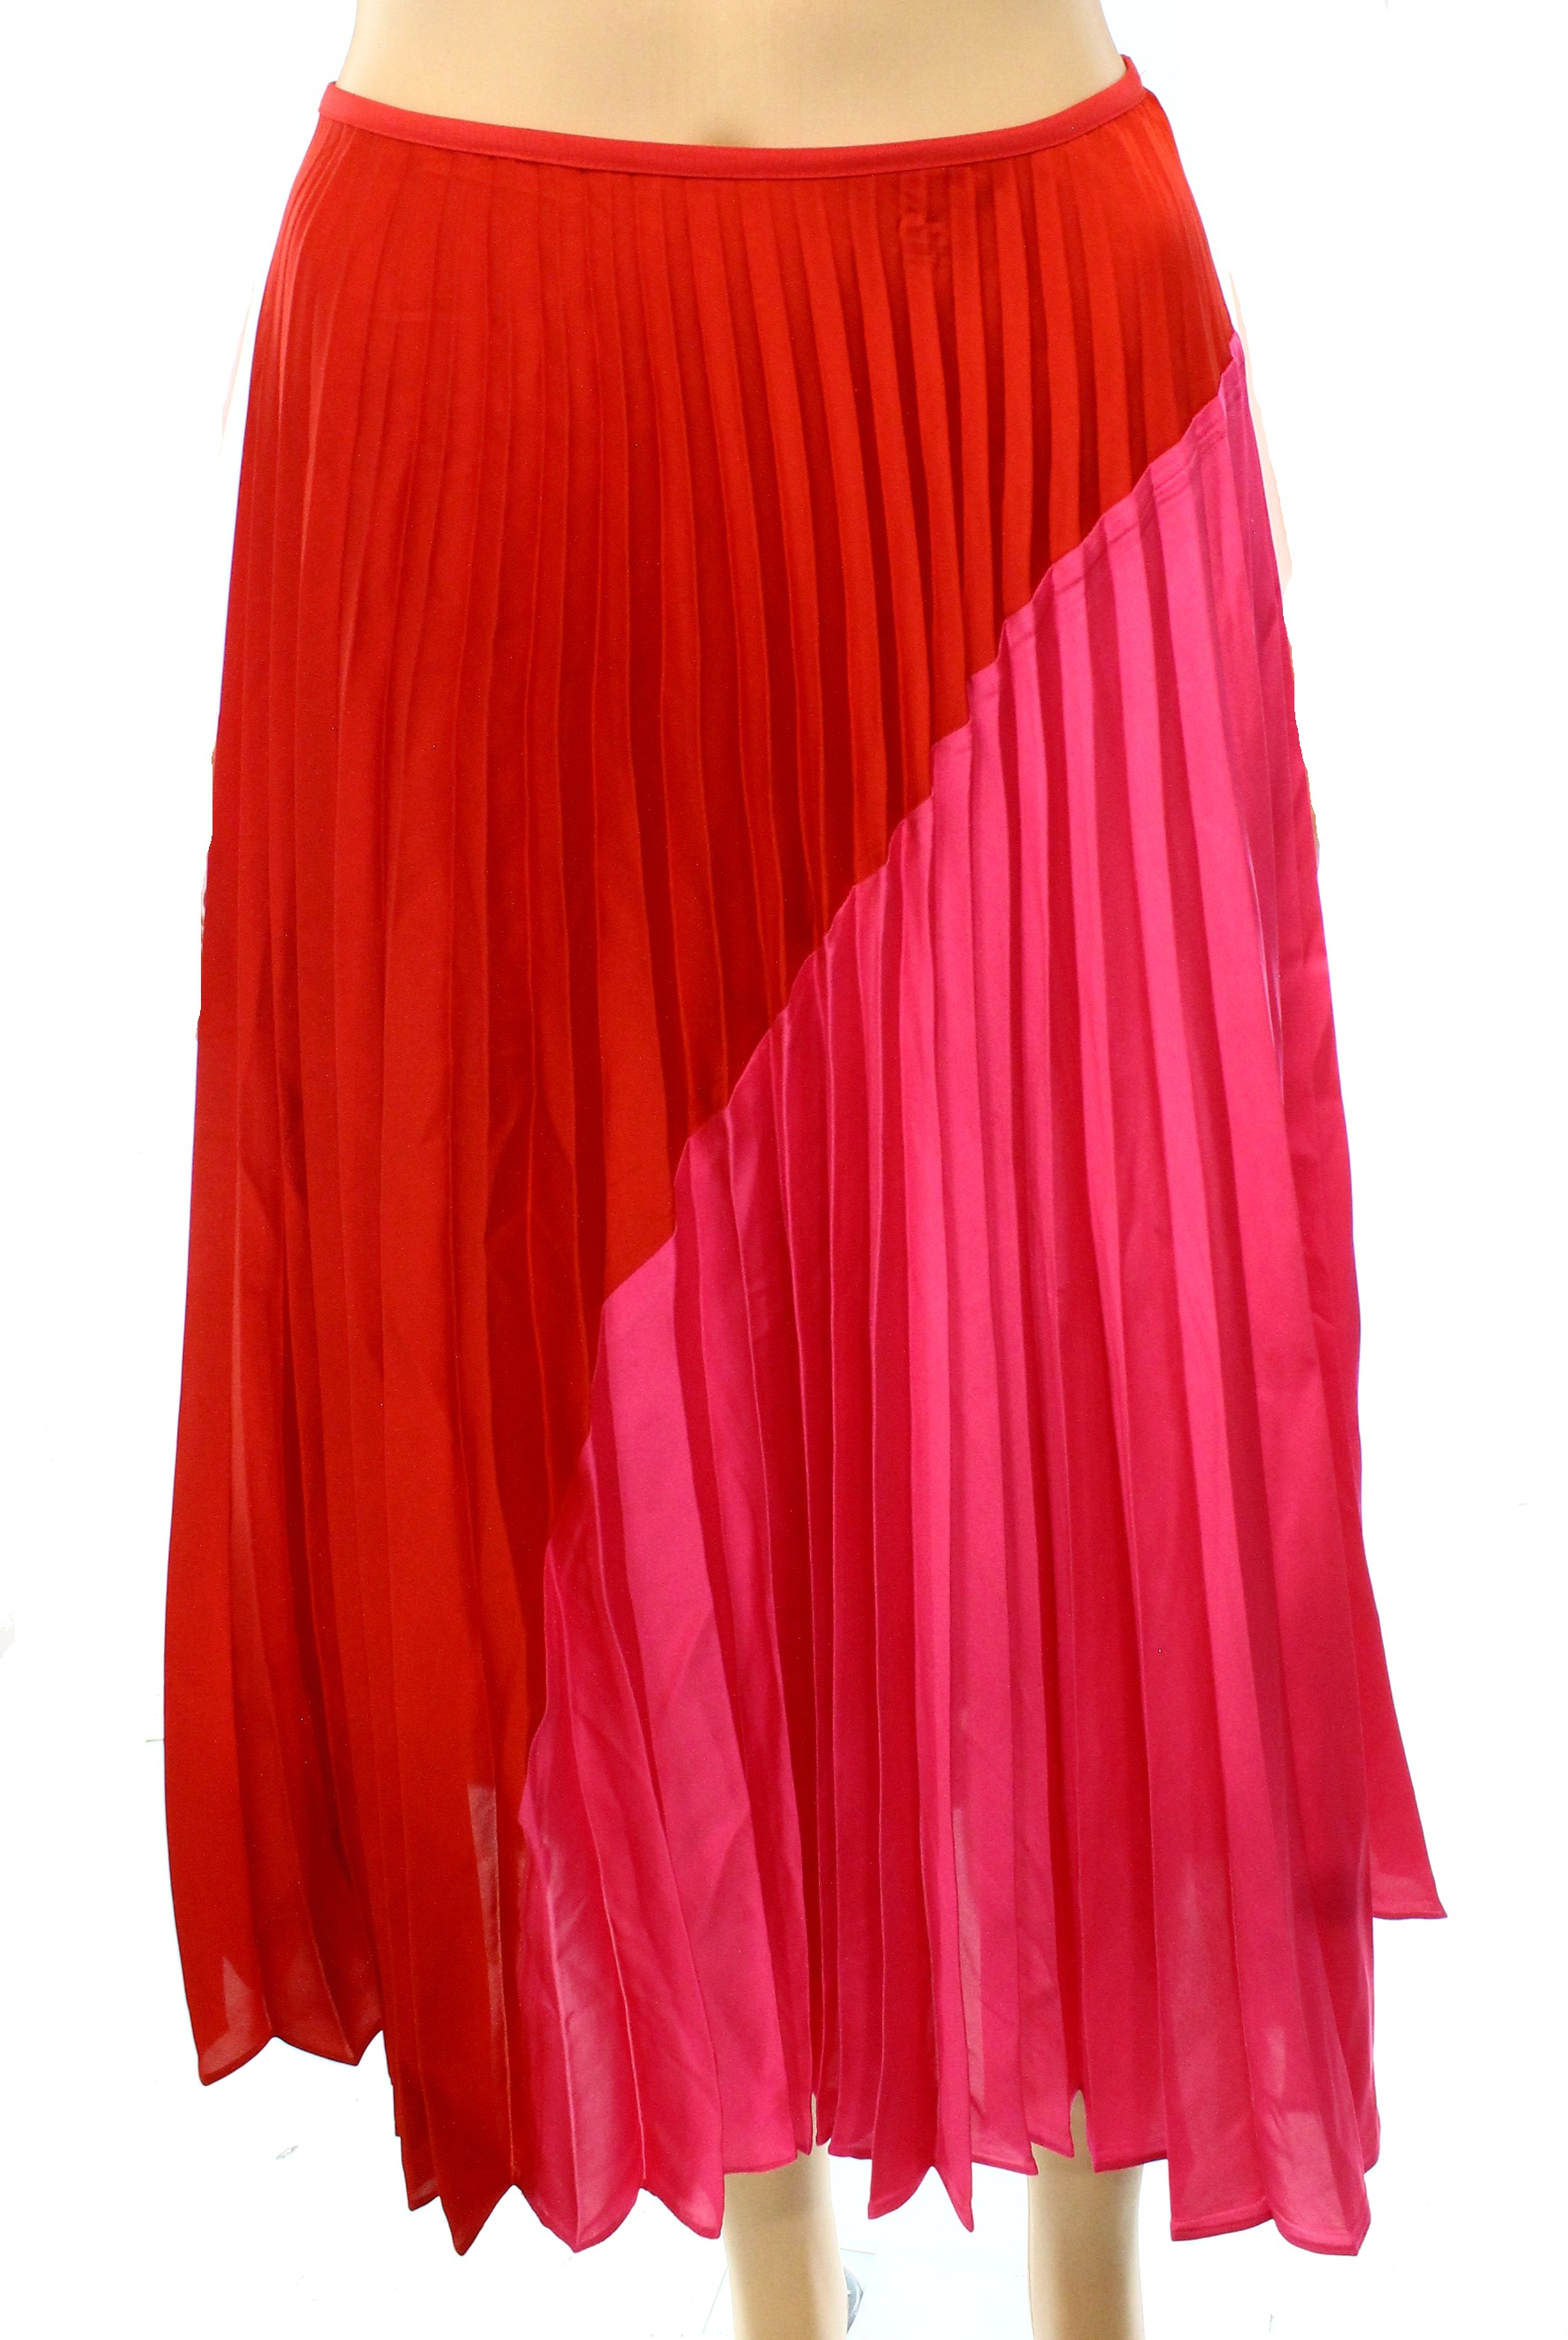 42aab877e7 Theory - Theory NEW Red Pink Women's Size Large L Colorblock Pleated Skirt  - Walmart.com